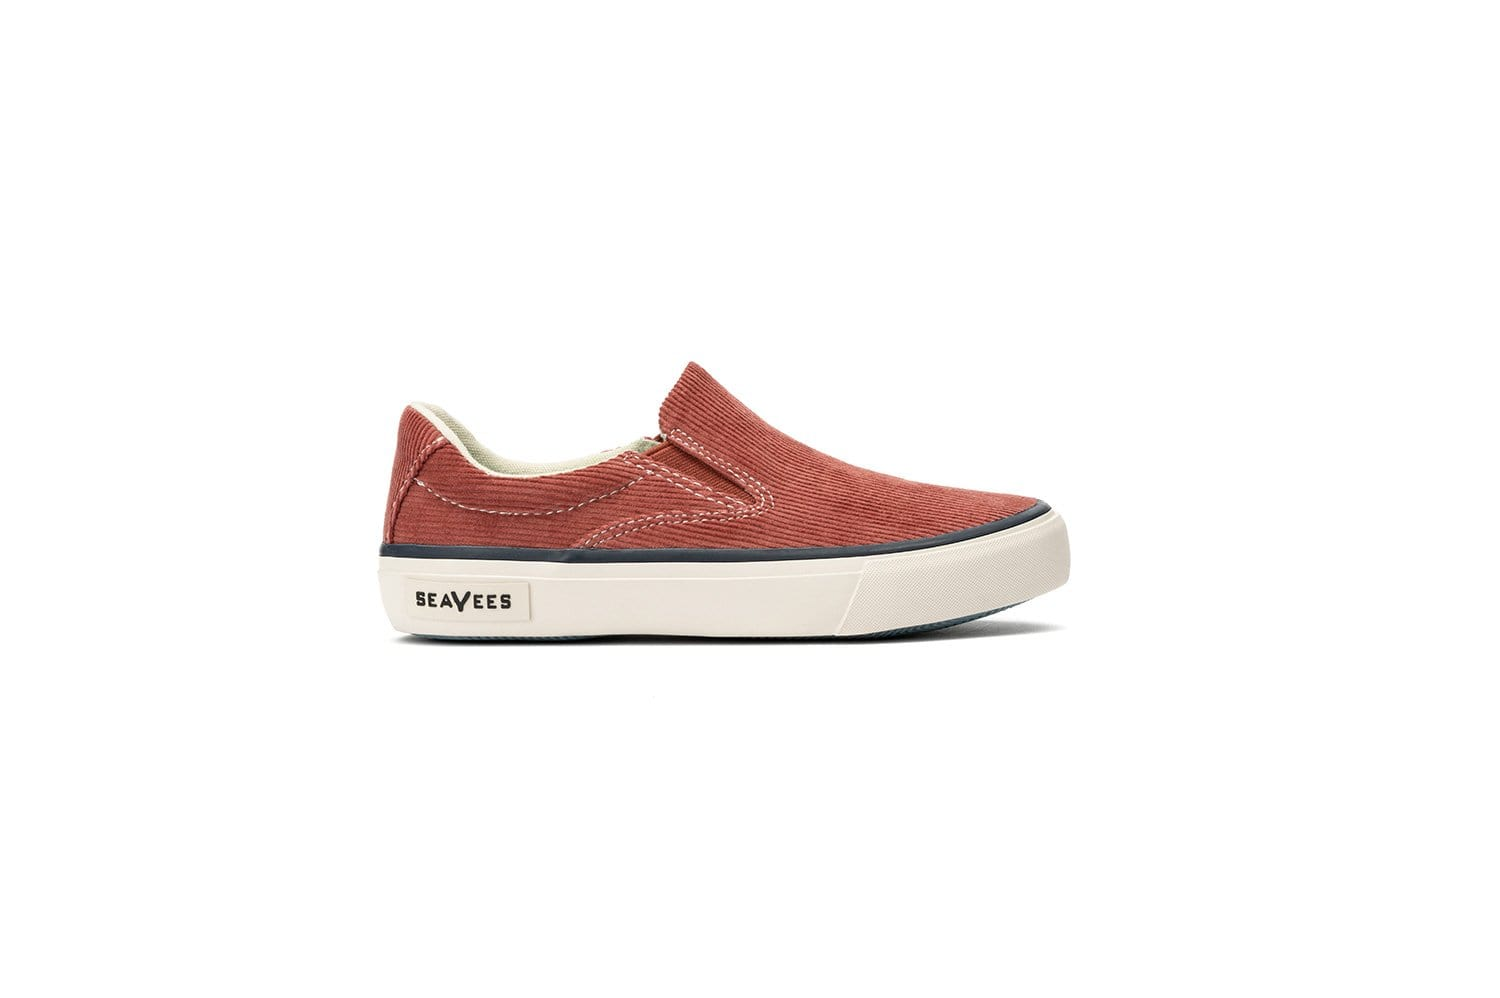 Big Kids - Hawthorne Slip On Cordies